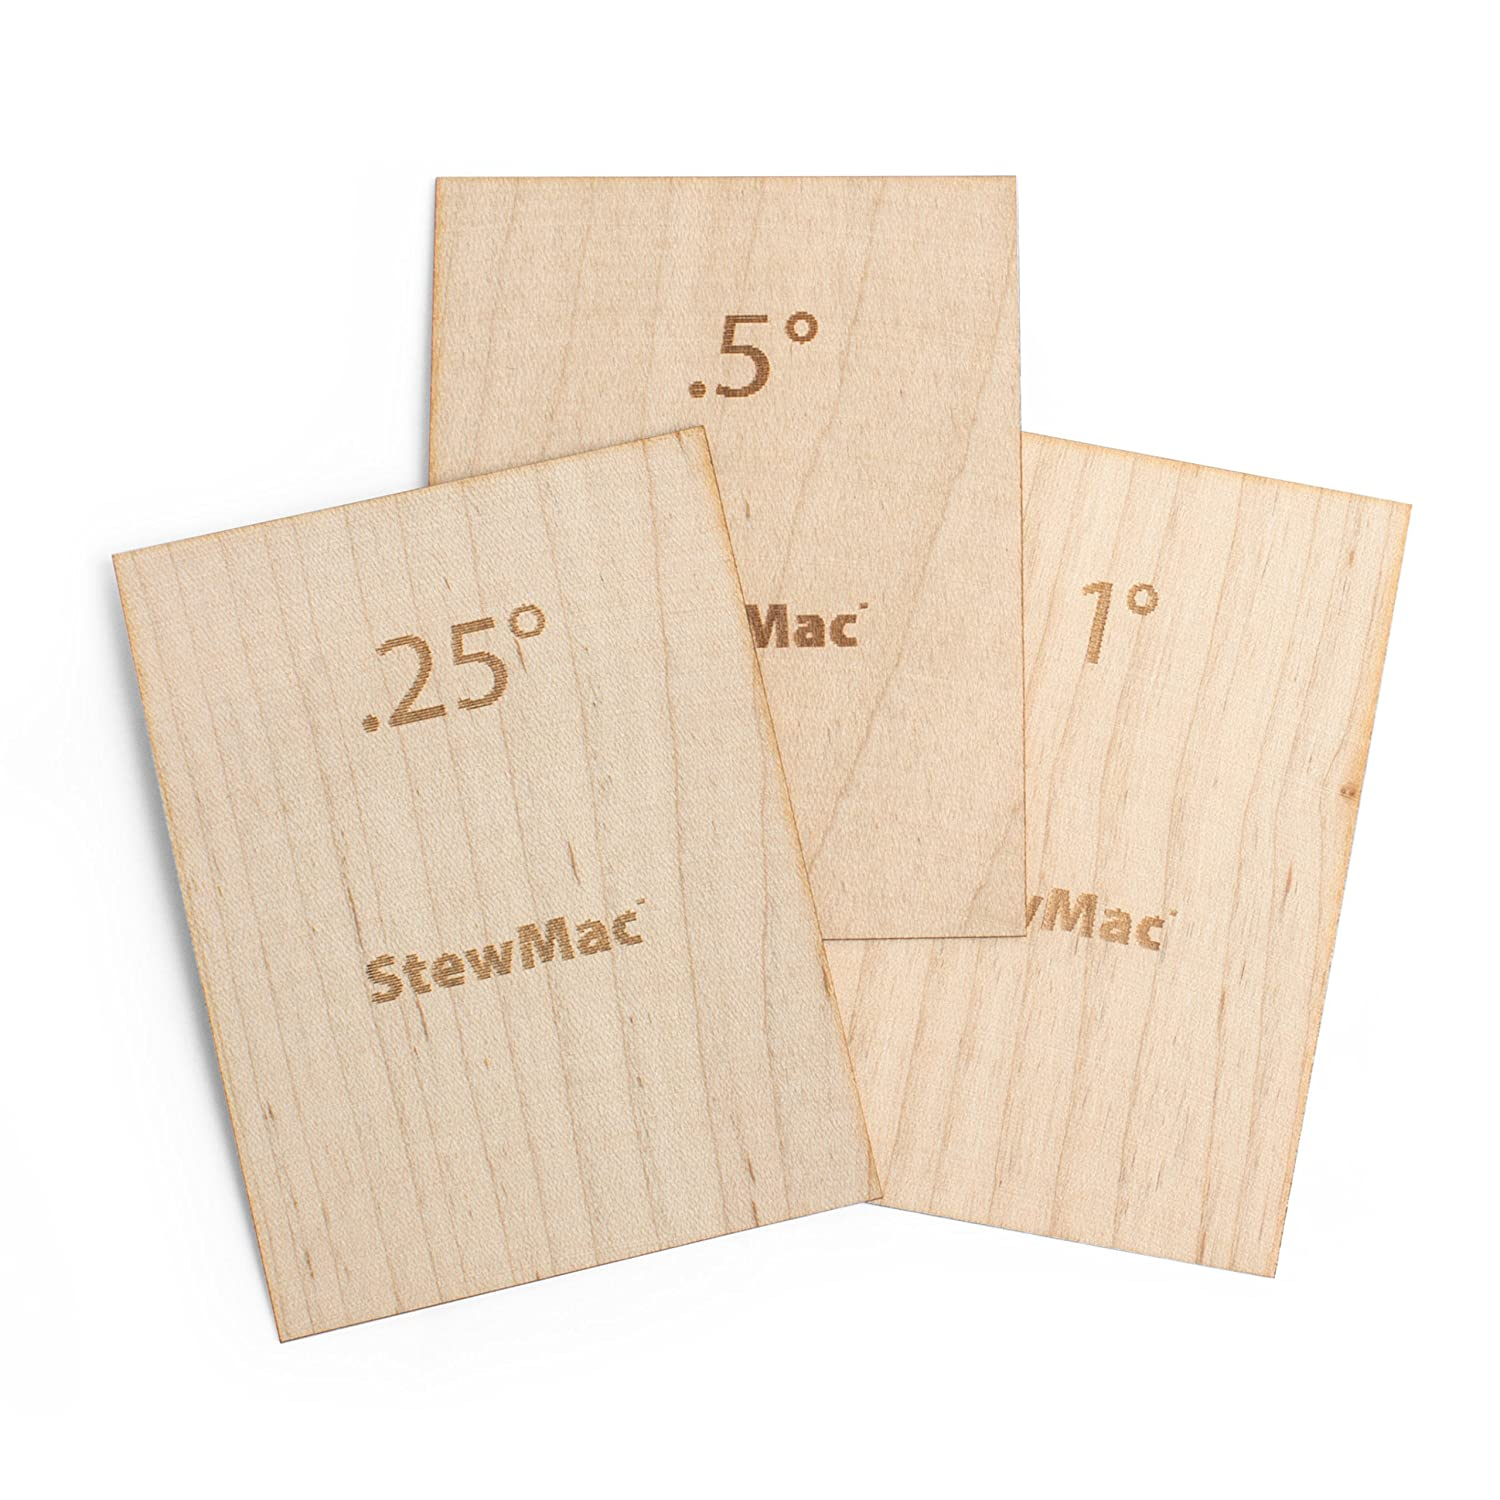 StewMac Guitar Neck Shims for Bolt-on Necks, Made of Solid Maple, Blank, Set of 3 #AN2130